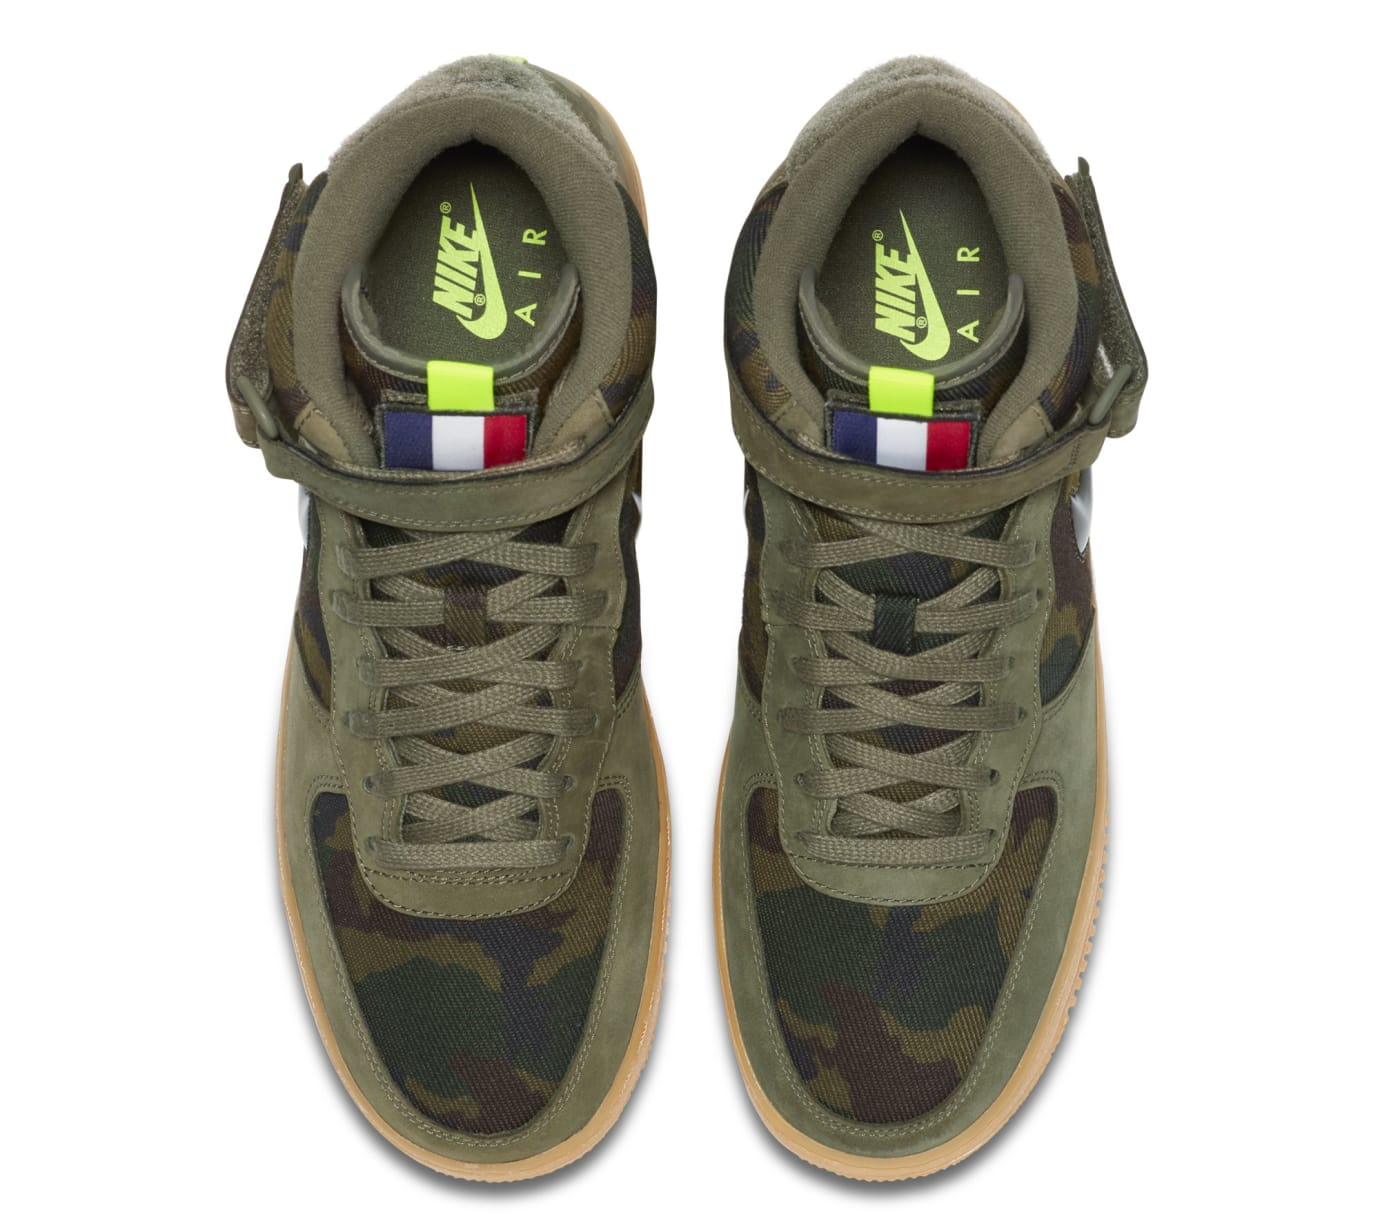 Nike Air Force 1 'Country Camo' France & Italy AV2586 200